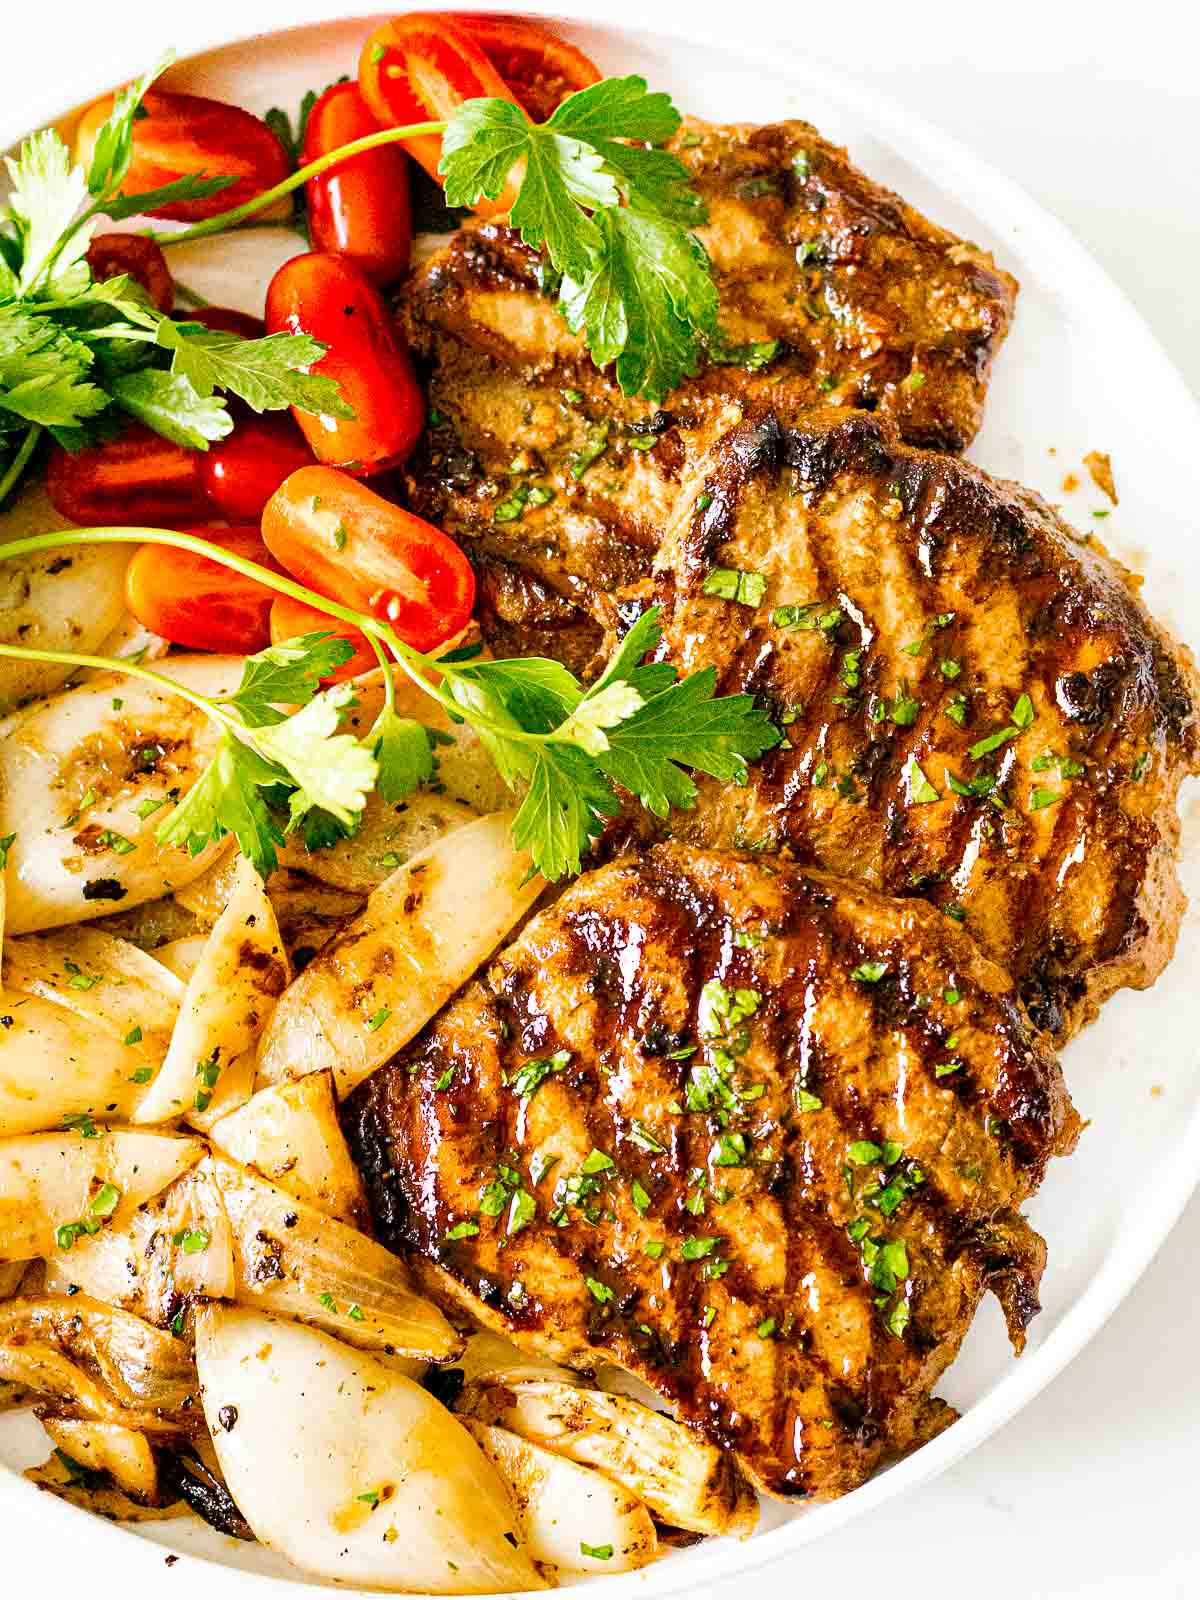 juicy grilled pork chops with grill marks on a white plate next to grilled onions and tomatoes